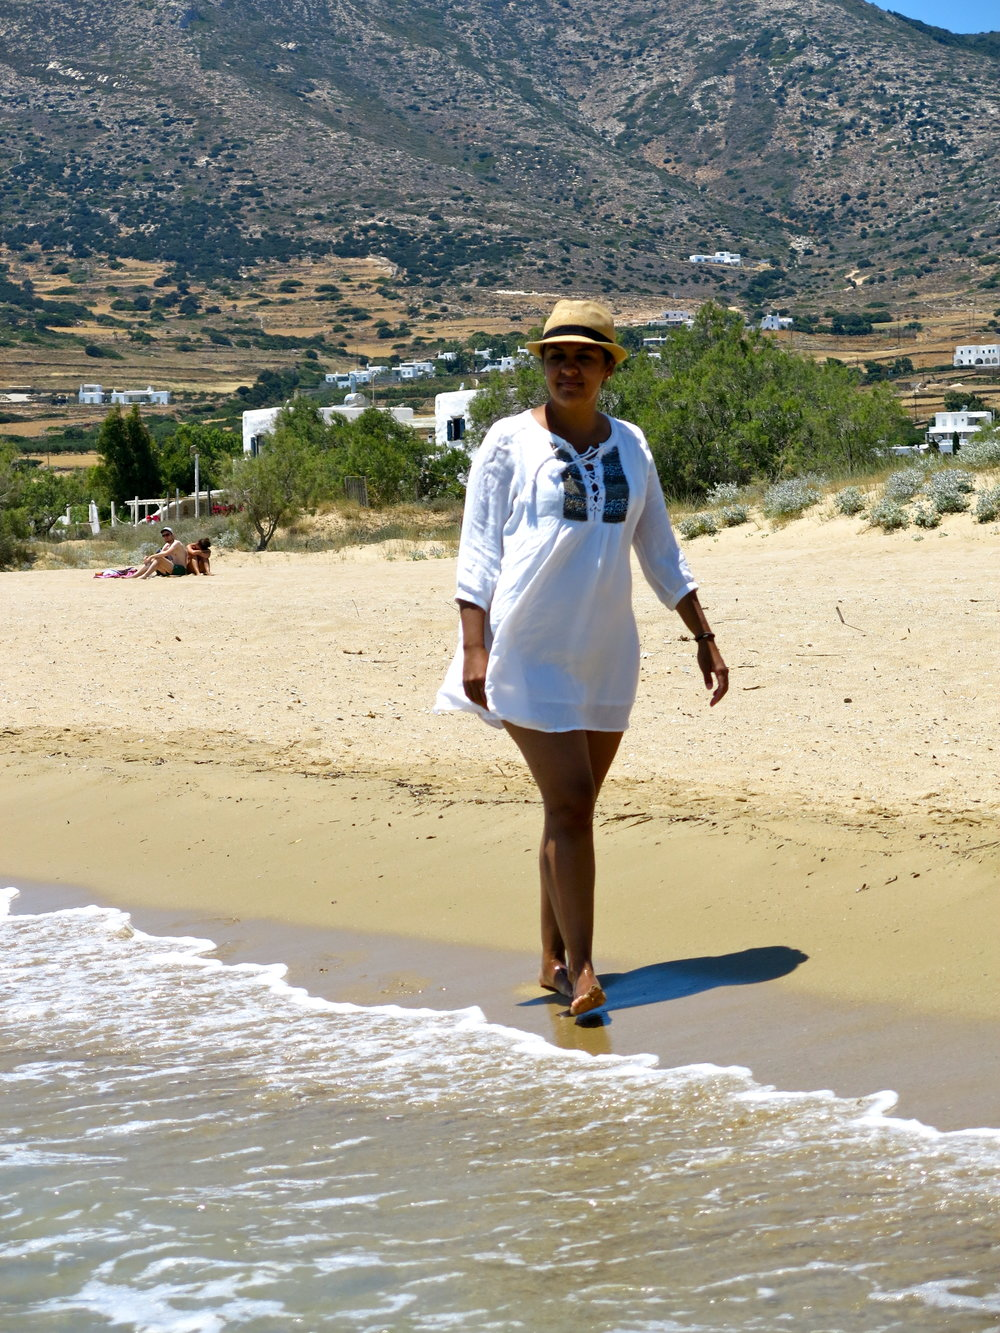 Walking on Golden Beach with the central mountain range in the background